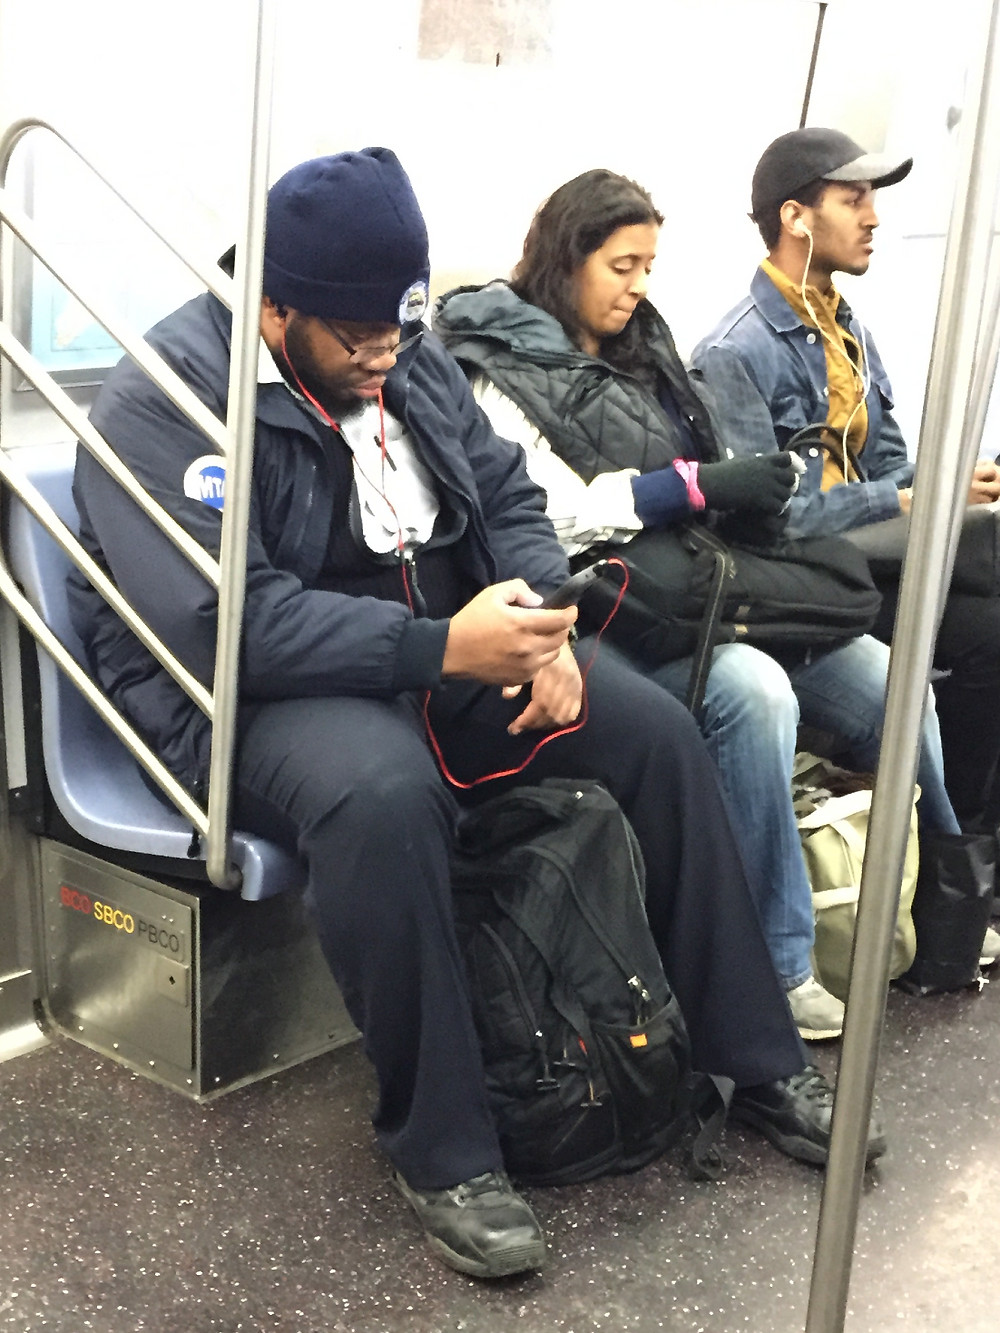 MTA employee manspreading in NYC despite the MTA's courtesy counts campaign #2